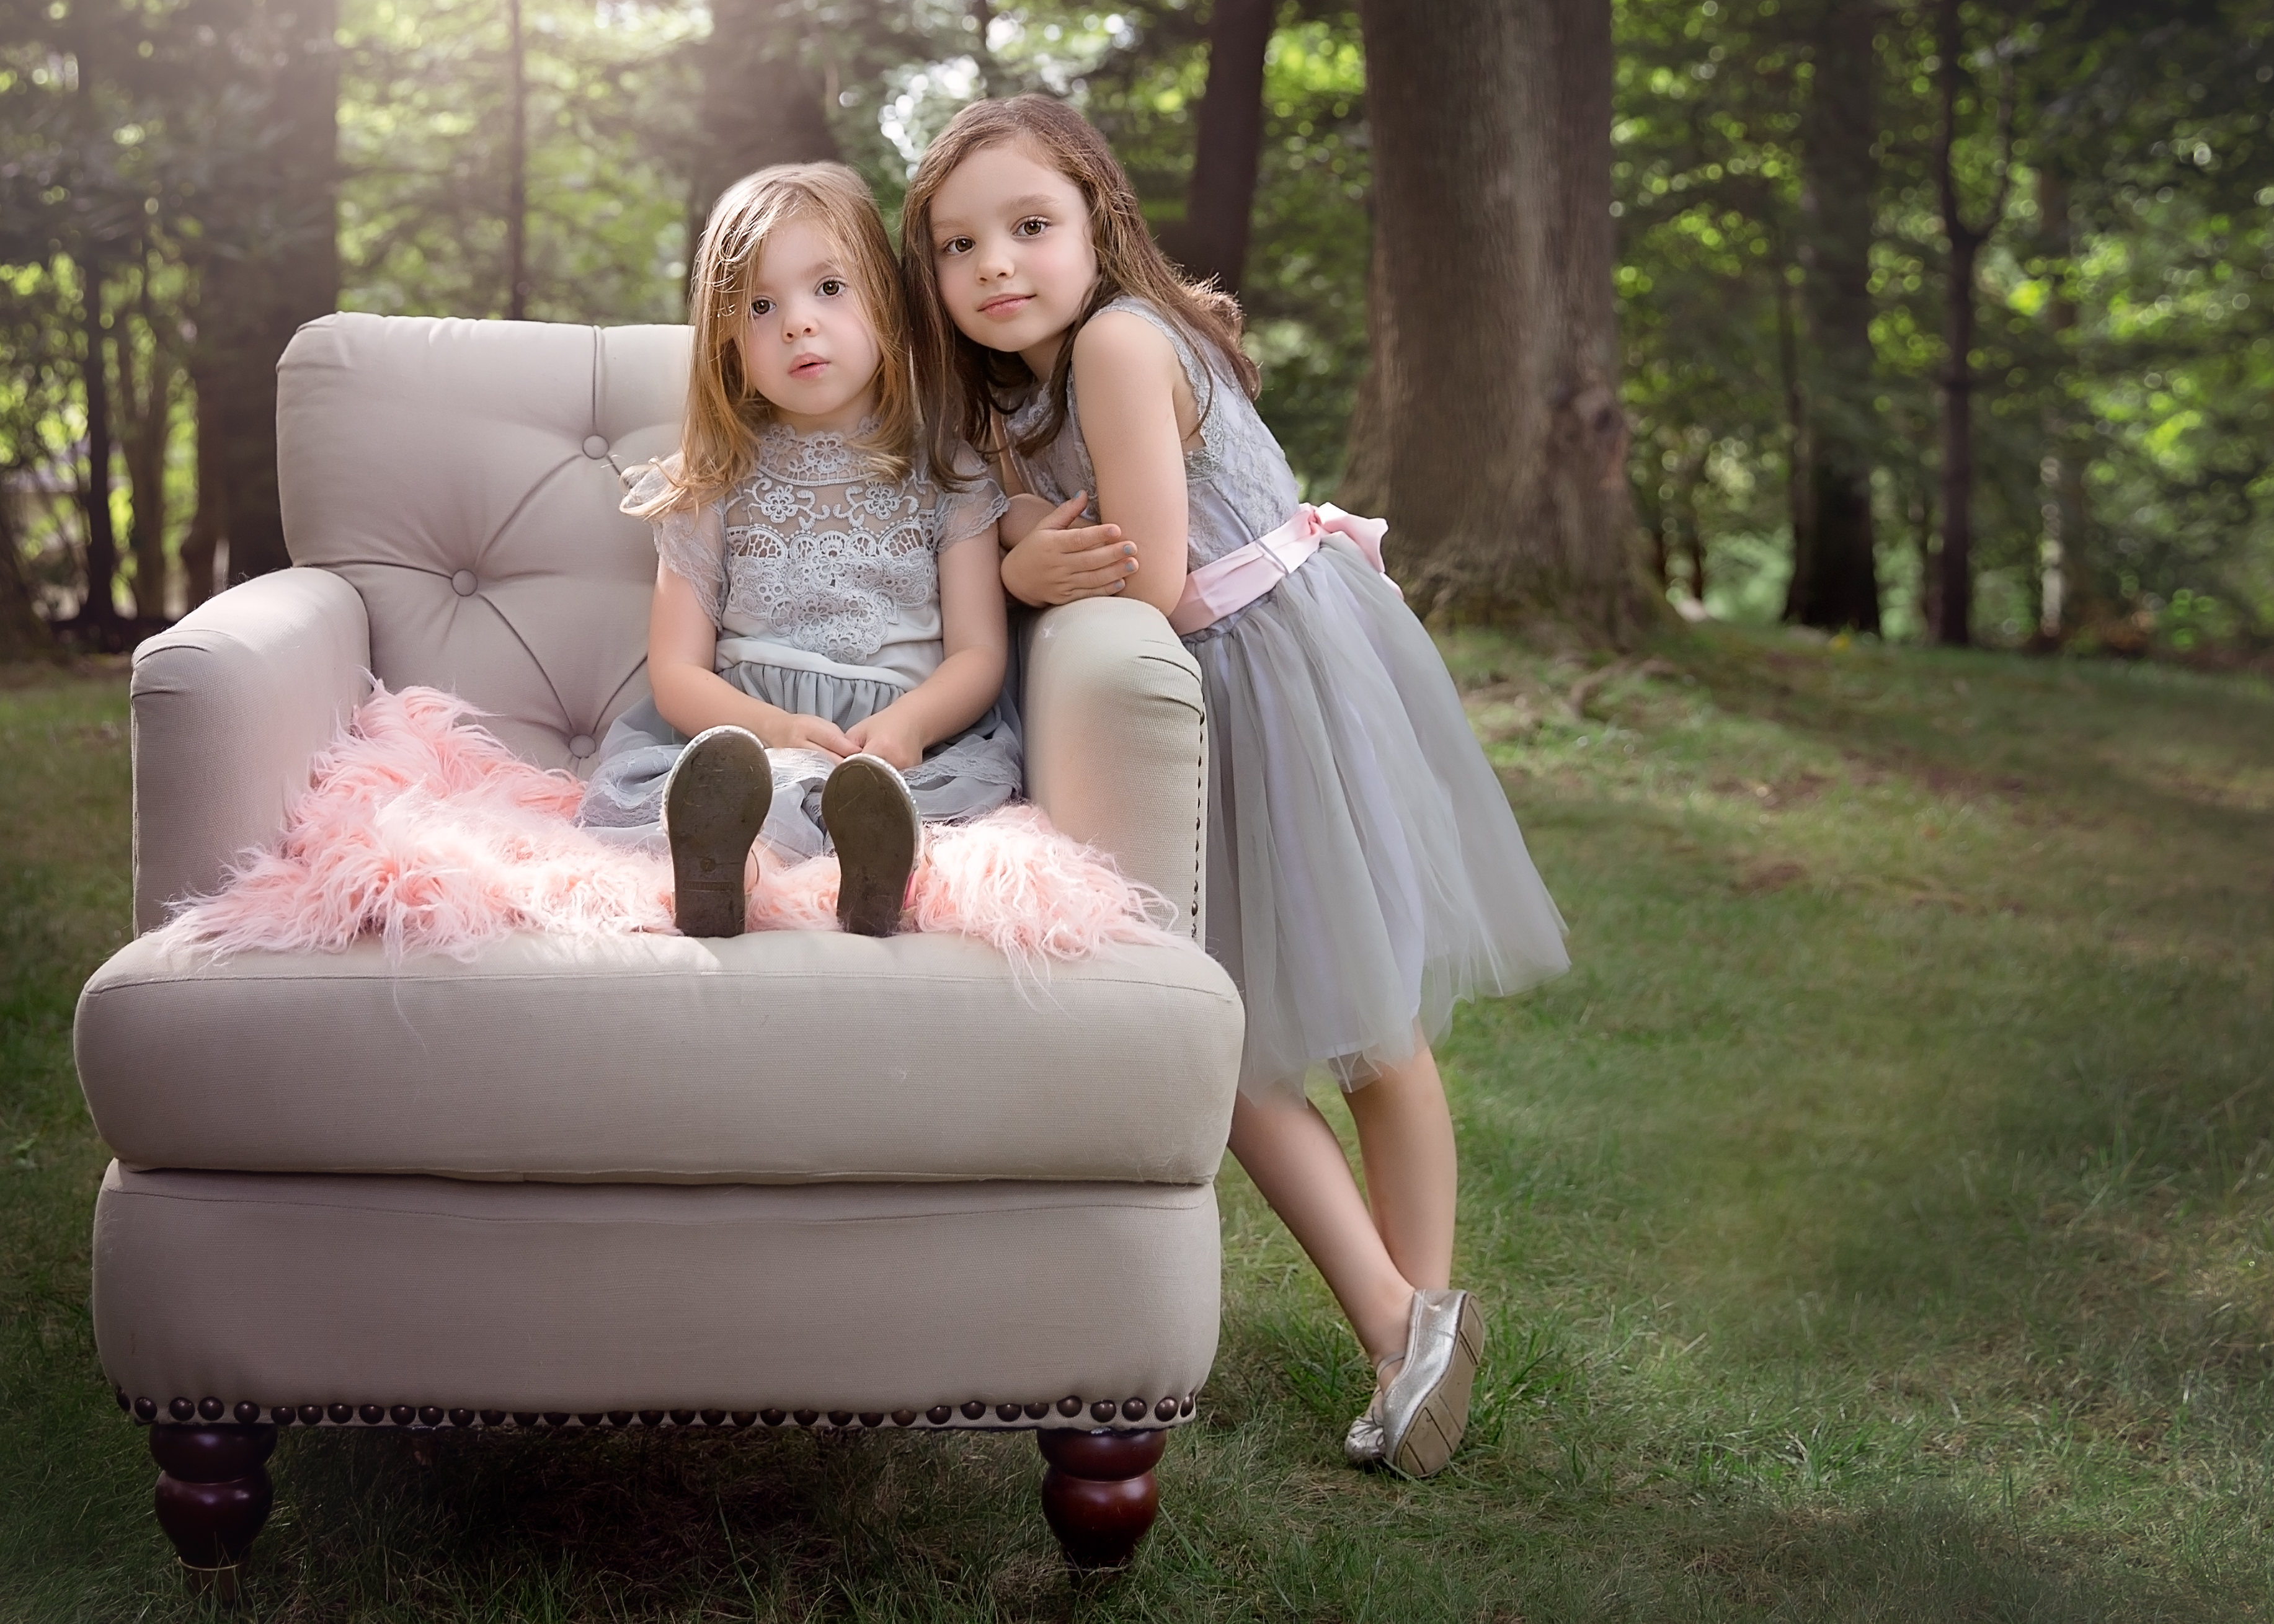 Nj family photographer